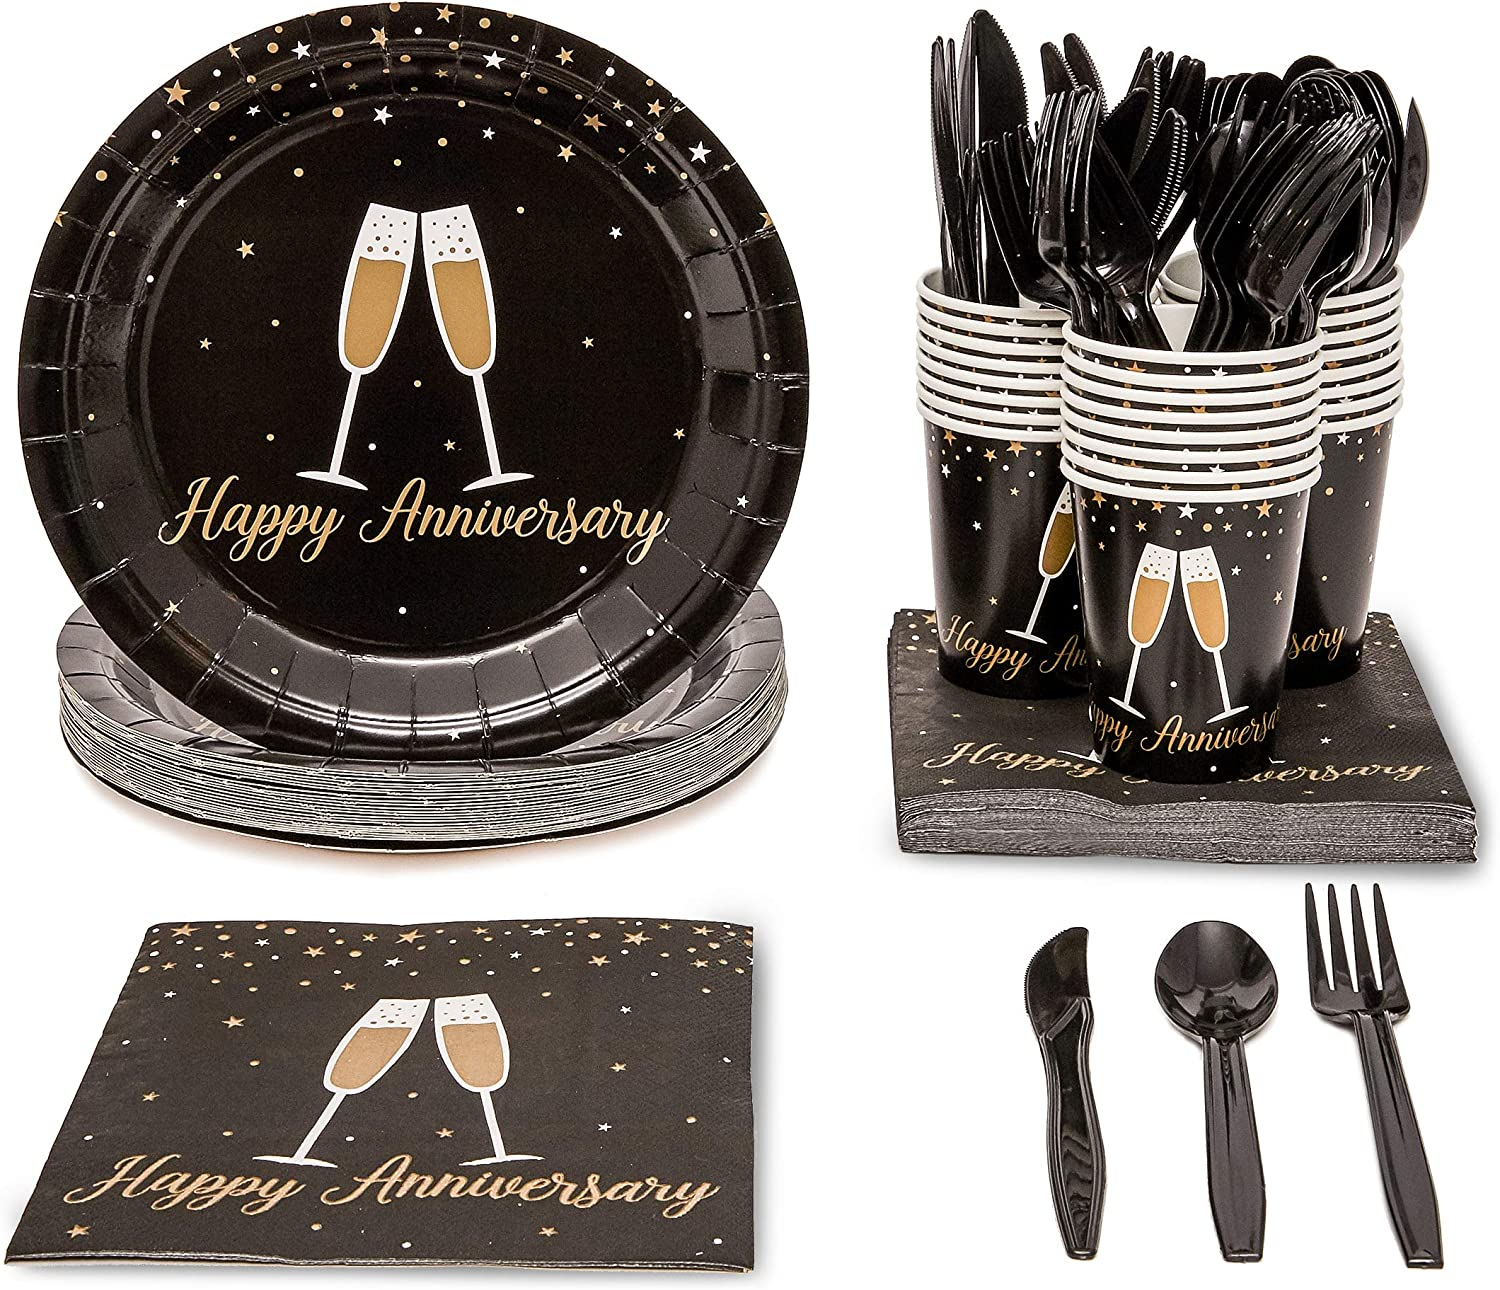 Happy Anniversary Party Bundle, Includes Plates, Napkins, Cups, and Cutlery (24 Guests,144 Pieces)